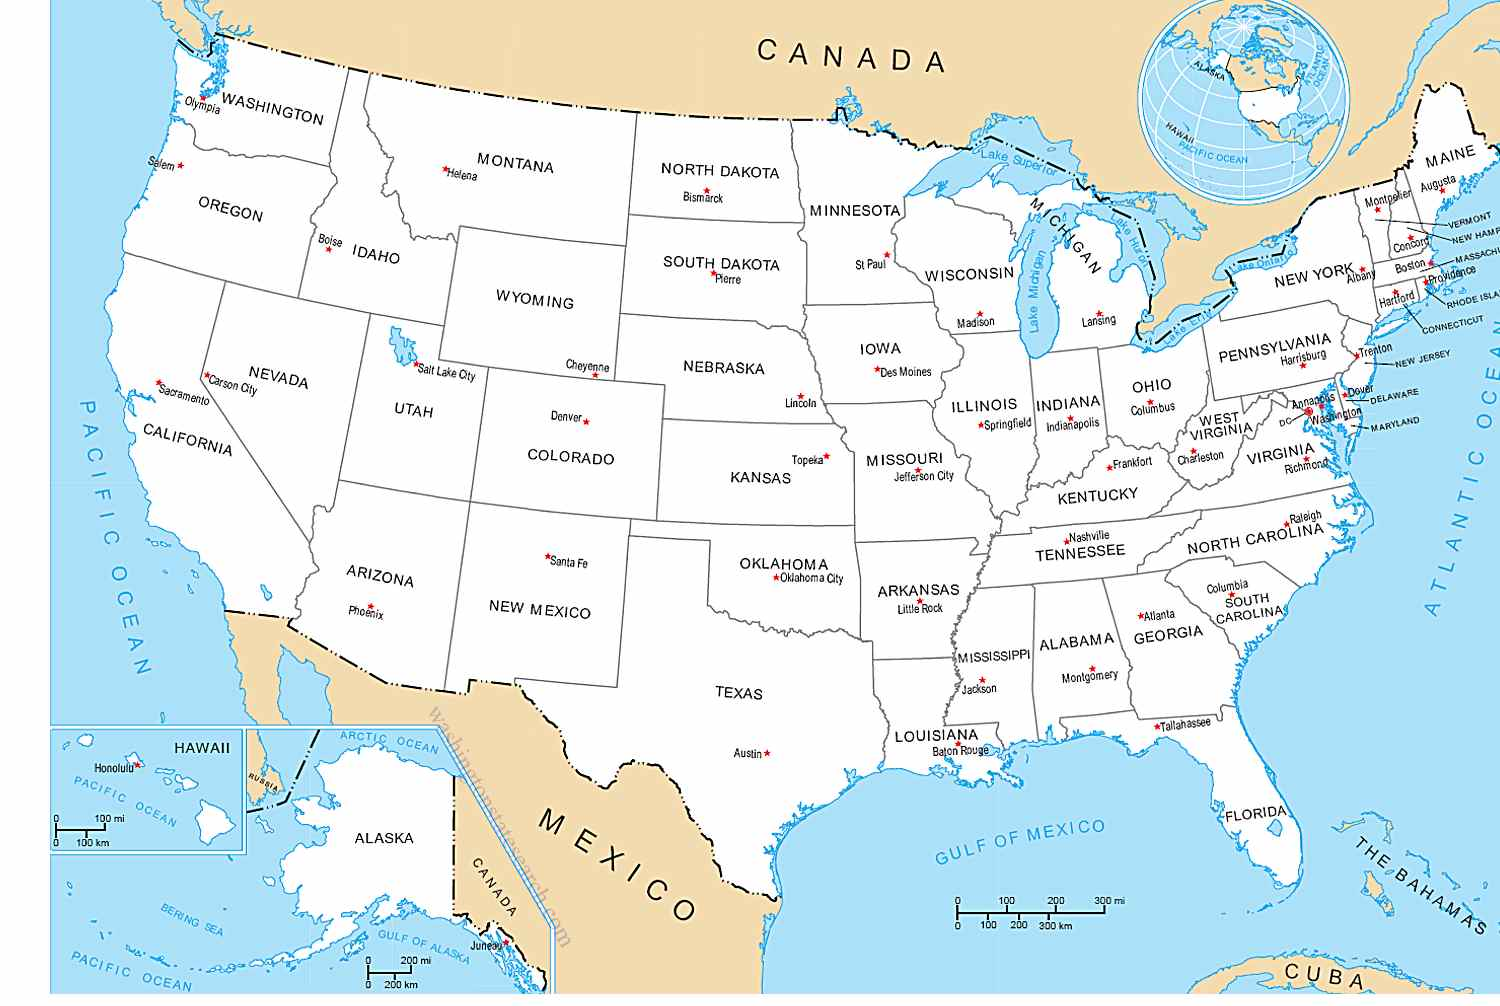 A map of The United States of America with all States & Capital Cities